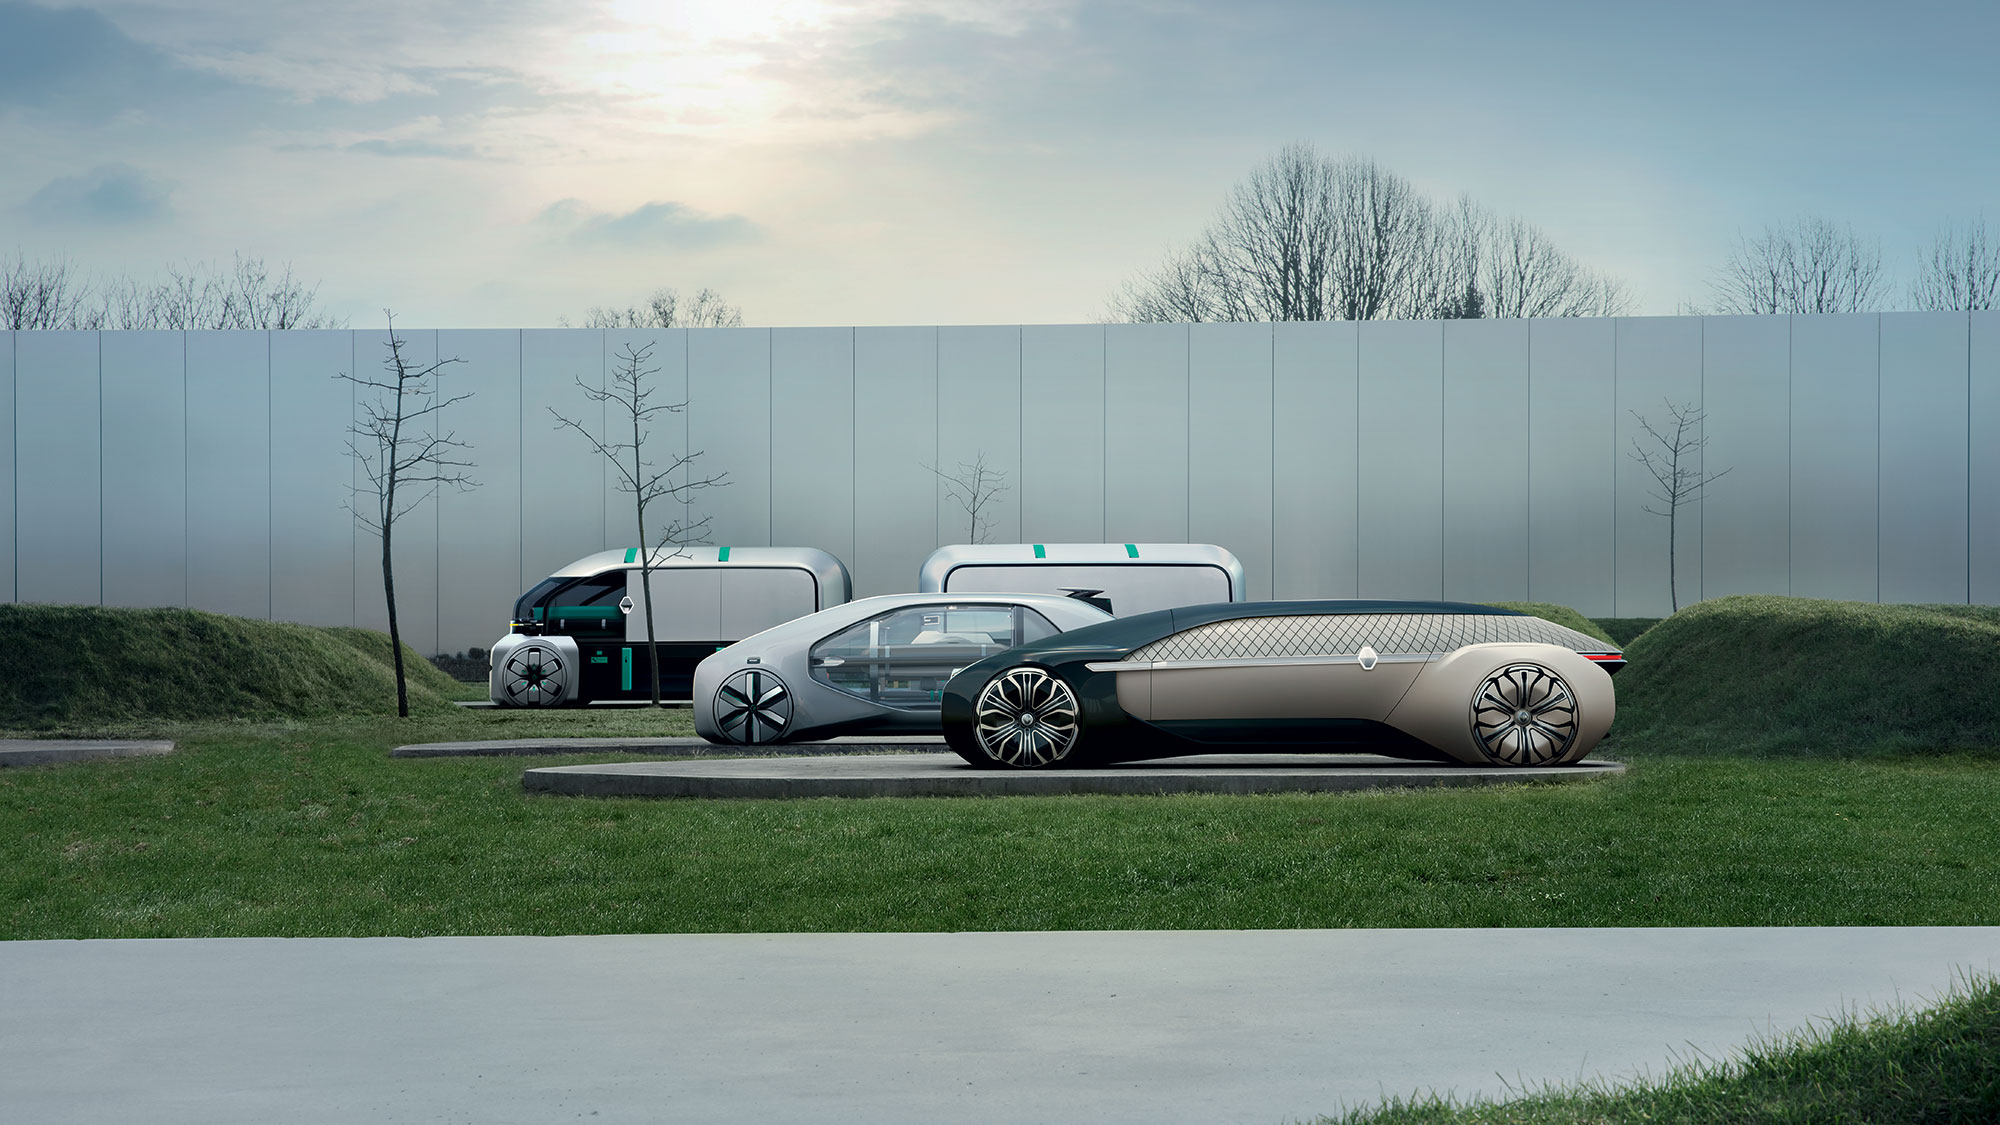 Renault robots taxis